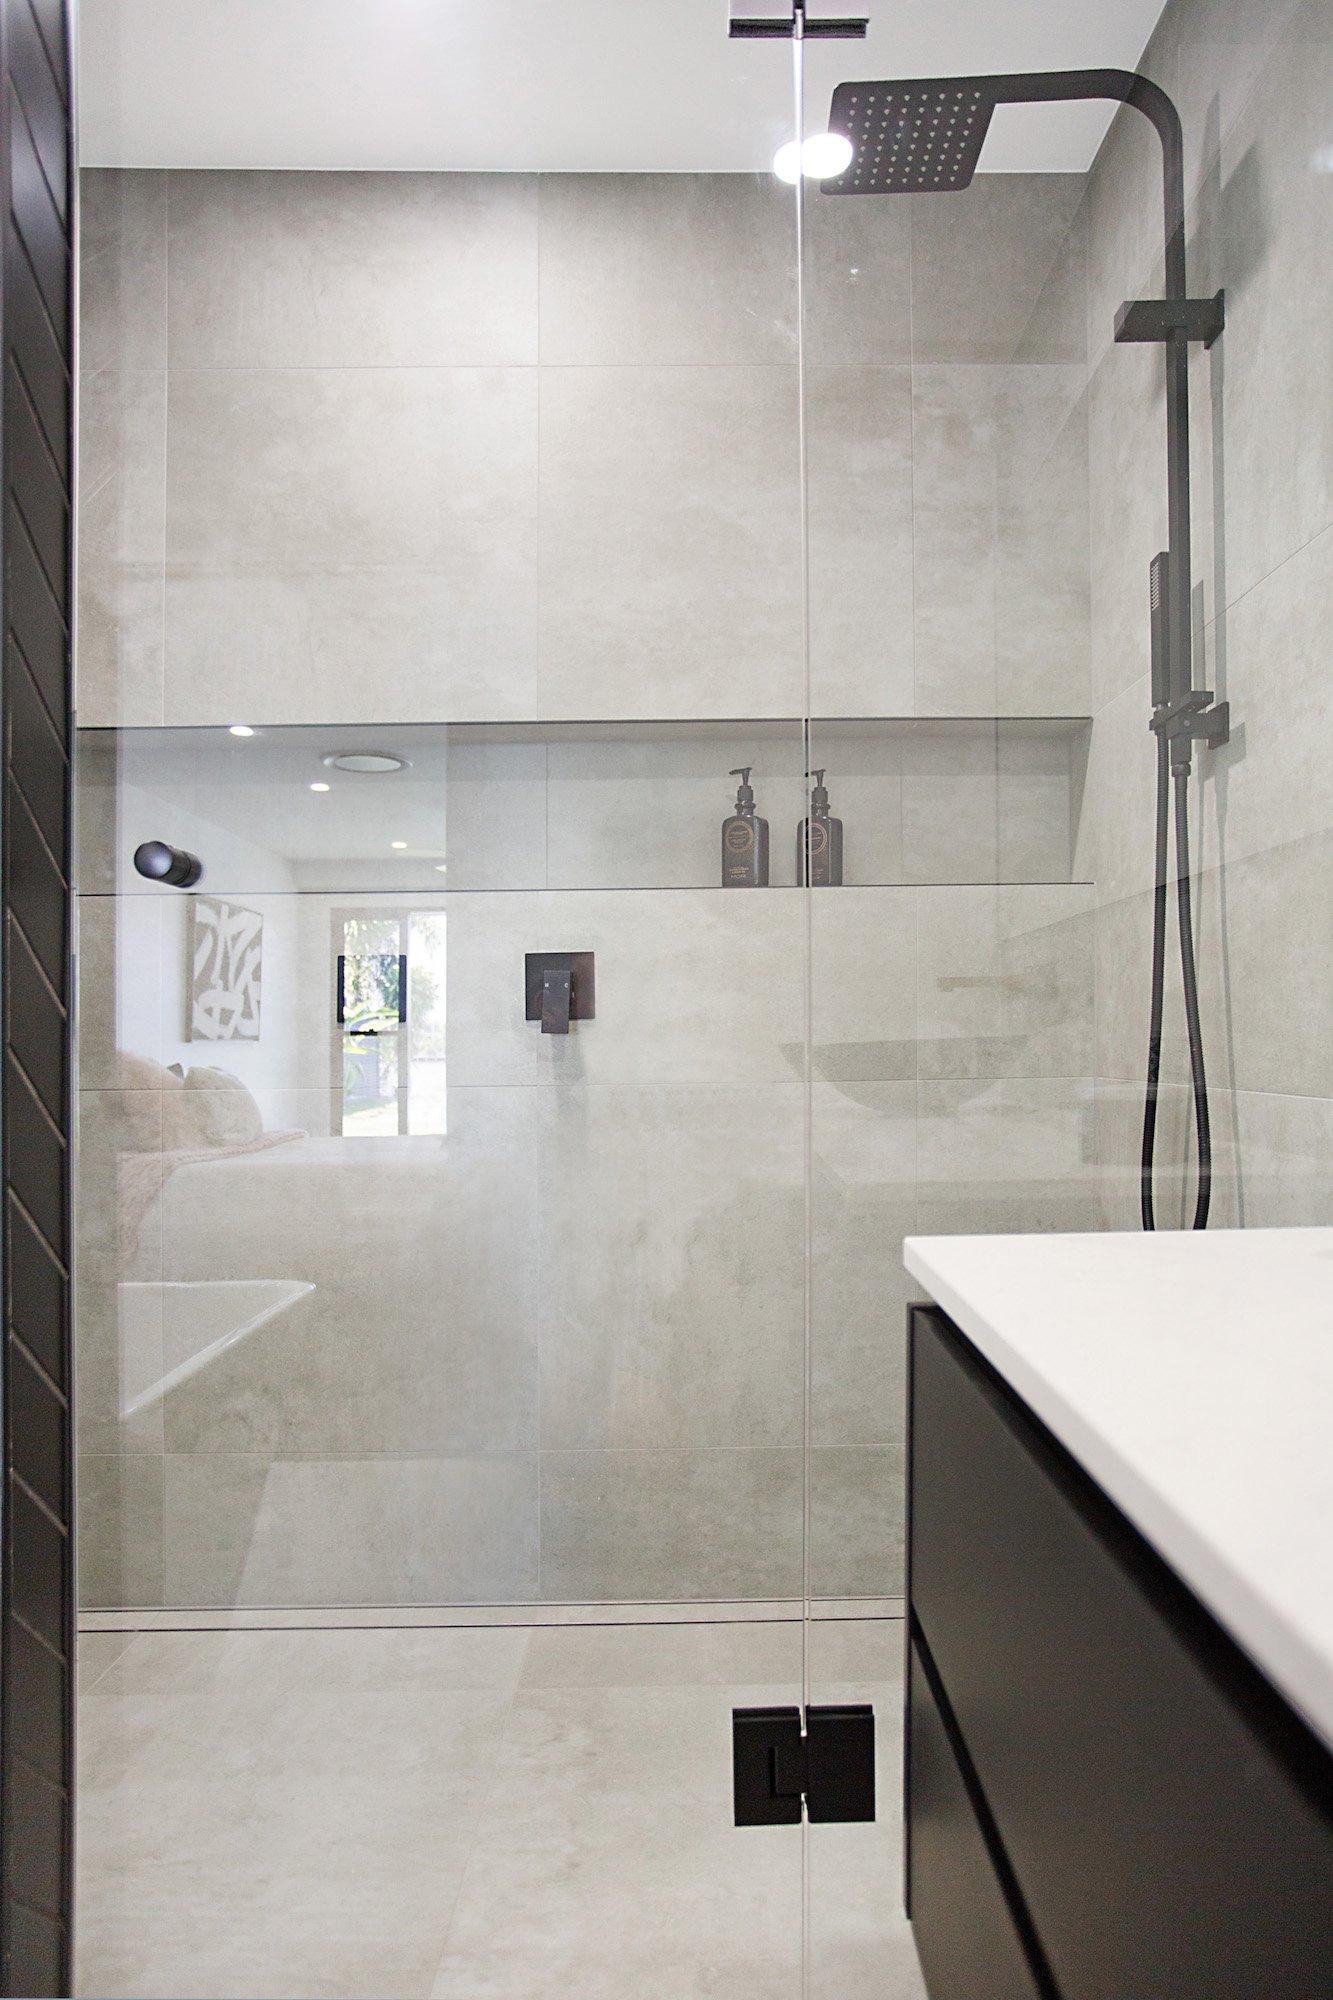 Double shower with matt black taps and concrete tiles